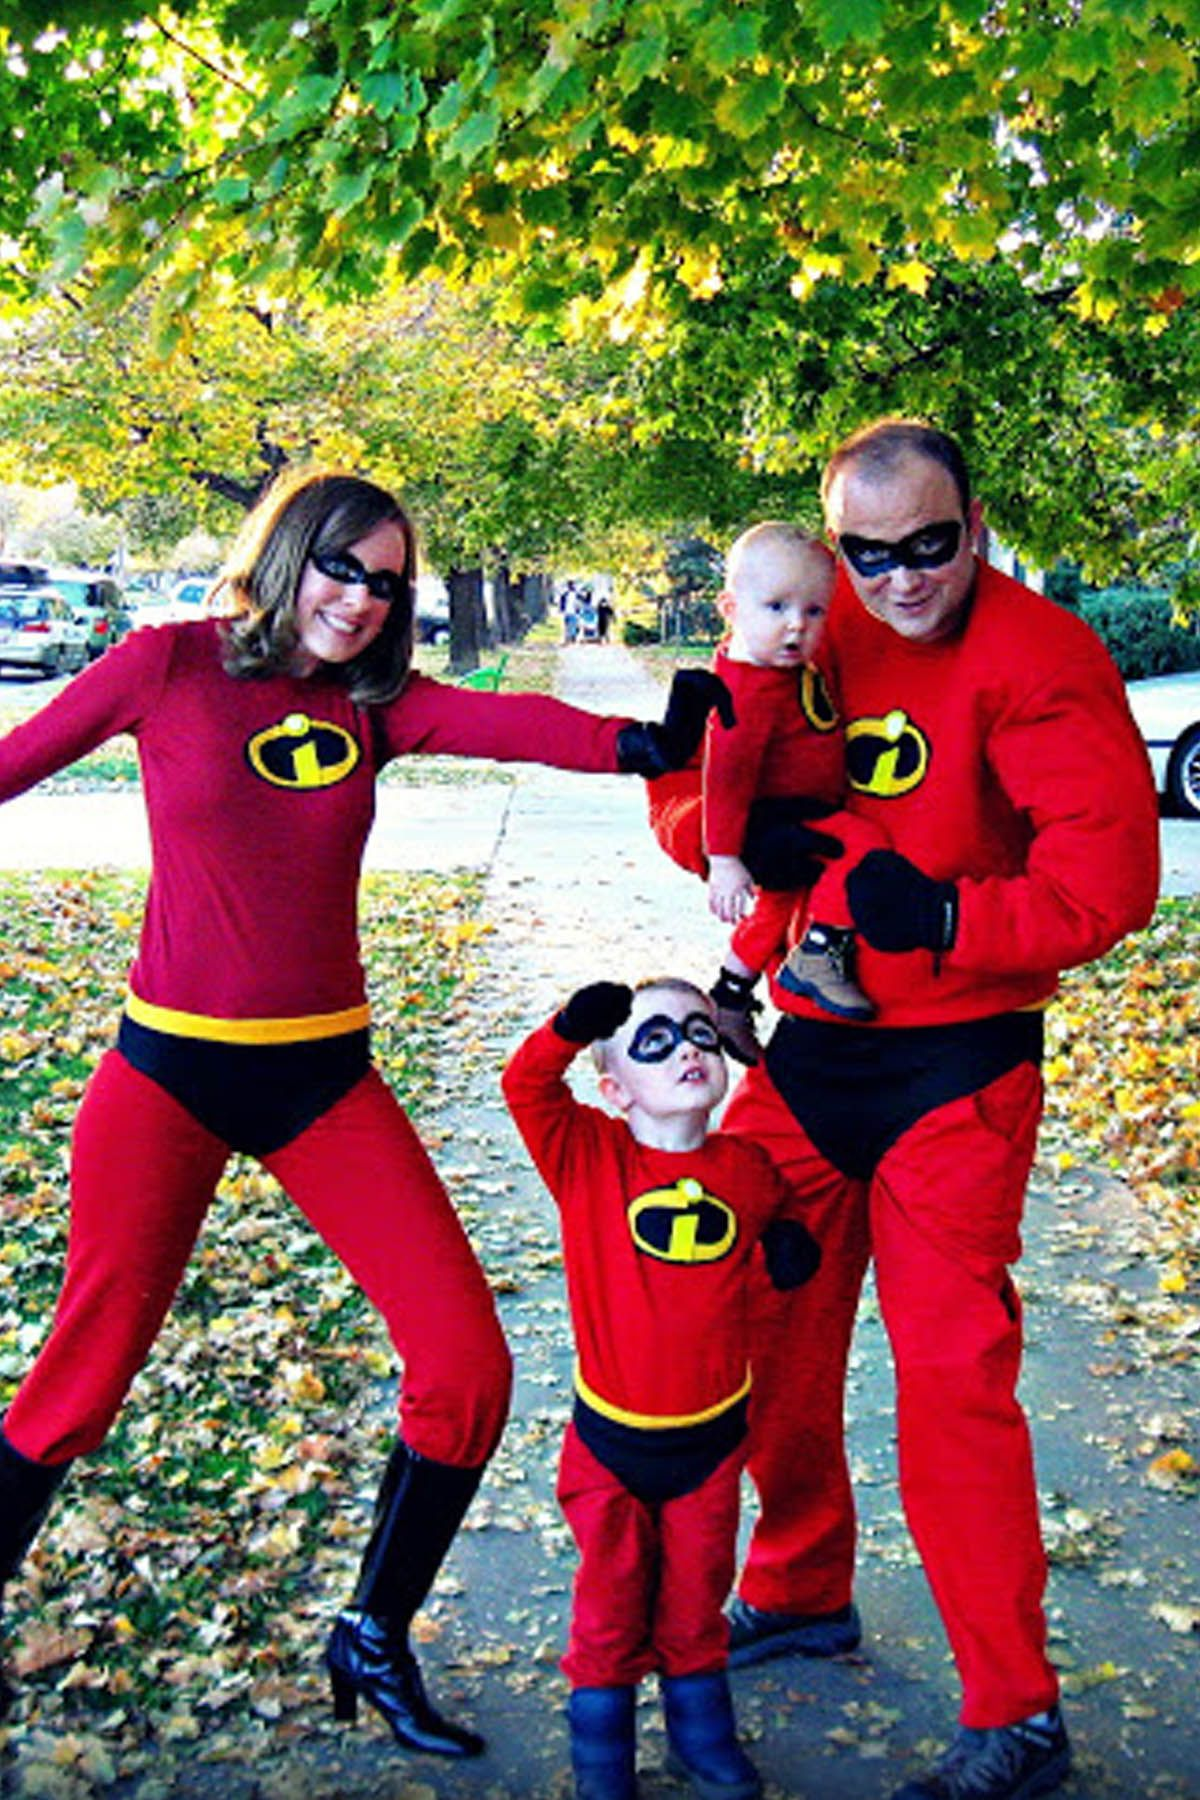 30 best family halloween costumes 2018 cute ideas for themed 30 best family halloween costumes 2018 cute ideas for themed costumes for families solutioingenieria Images